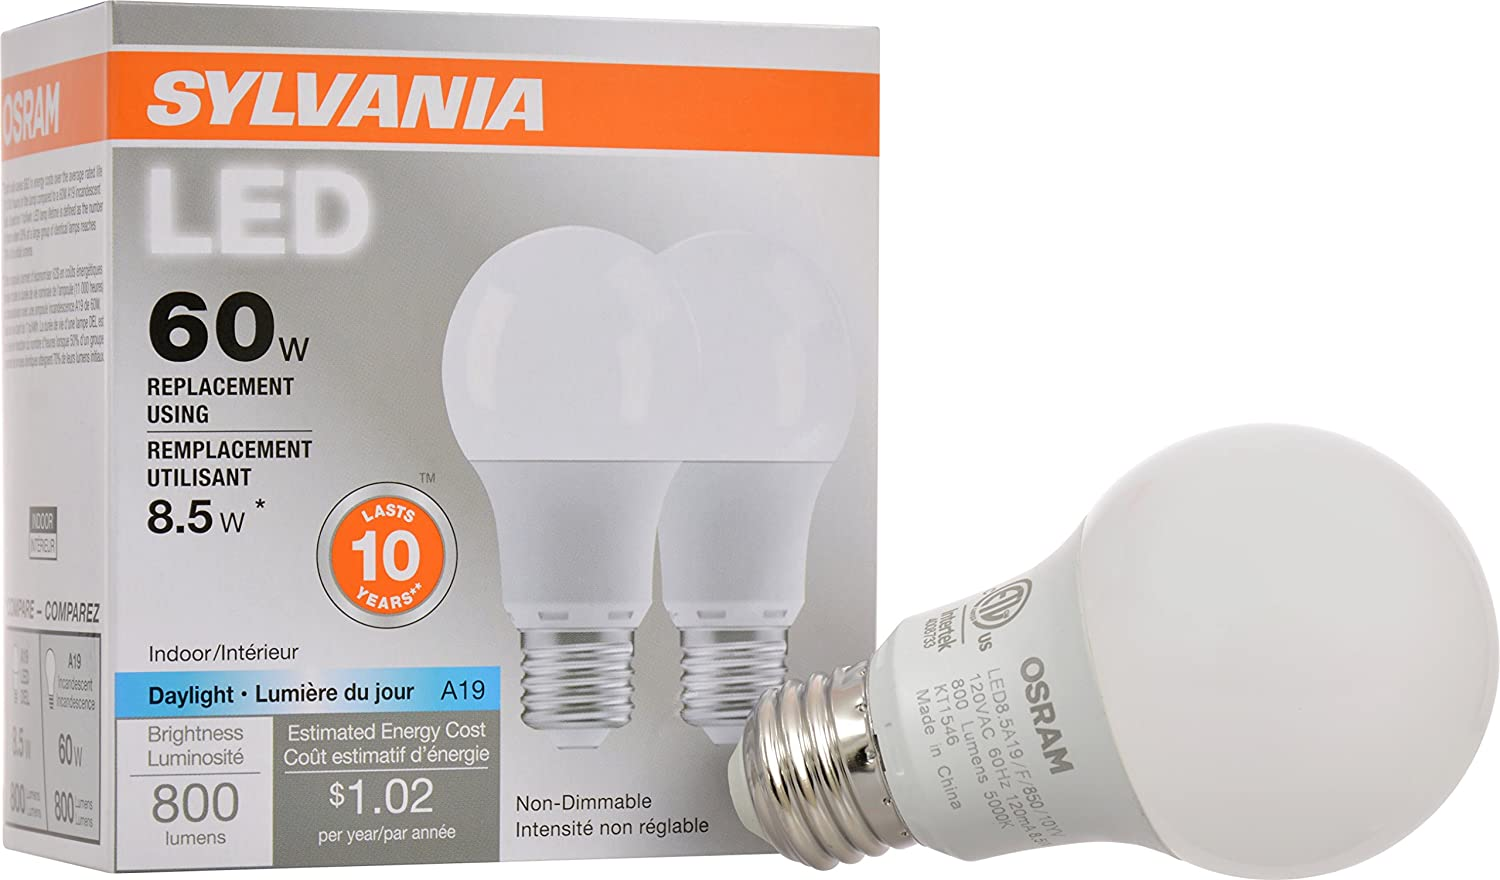 SYLVANIA, 60W Equivalent, LED Light Bulb, A19 Lamp, 2 Pack, Daylight, Energy Saving & Longer Life, Medium Base, Efficient 8.5W, 5000K